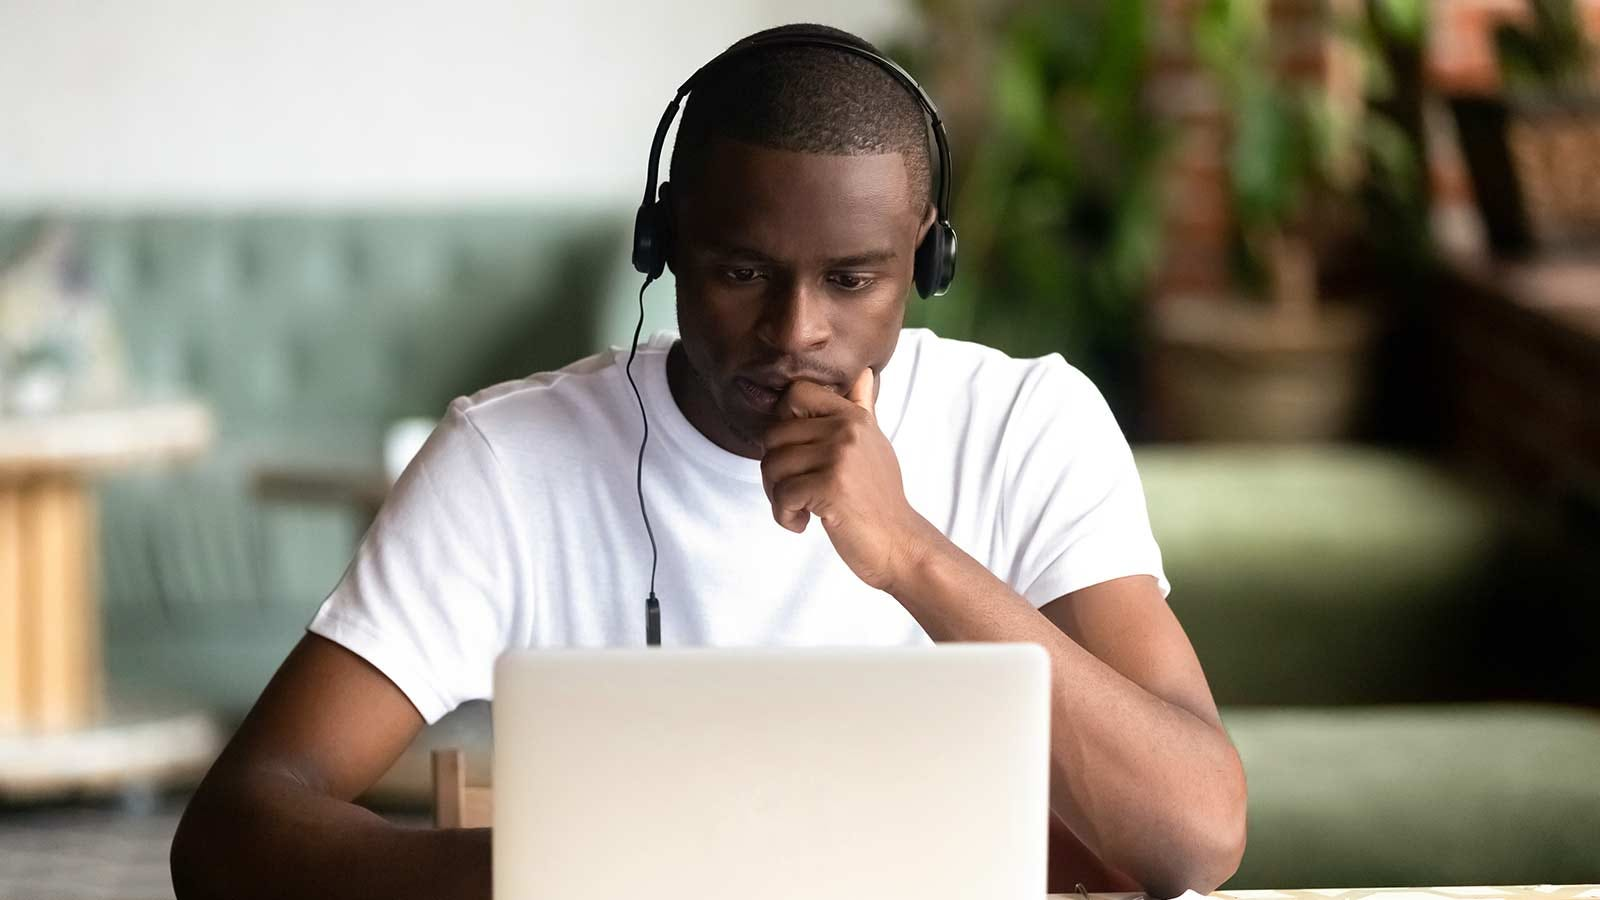 man studying intently while working on an online class